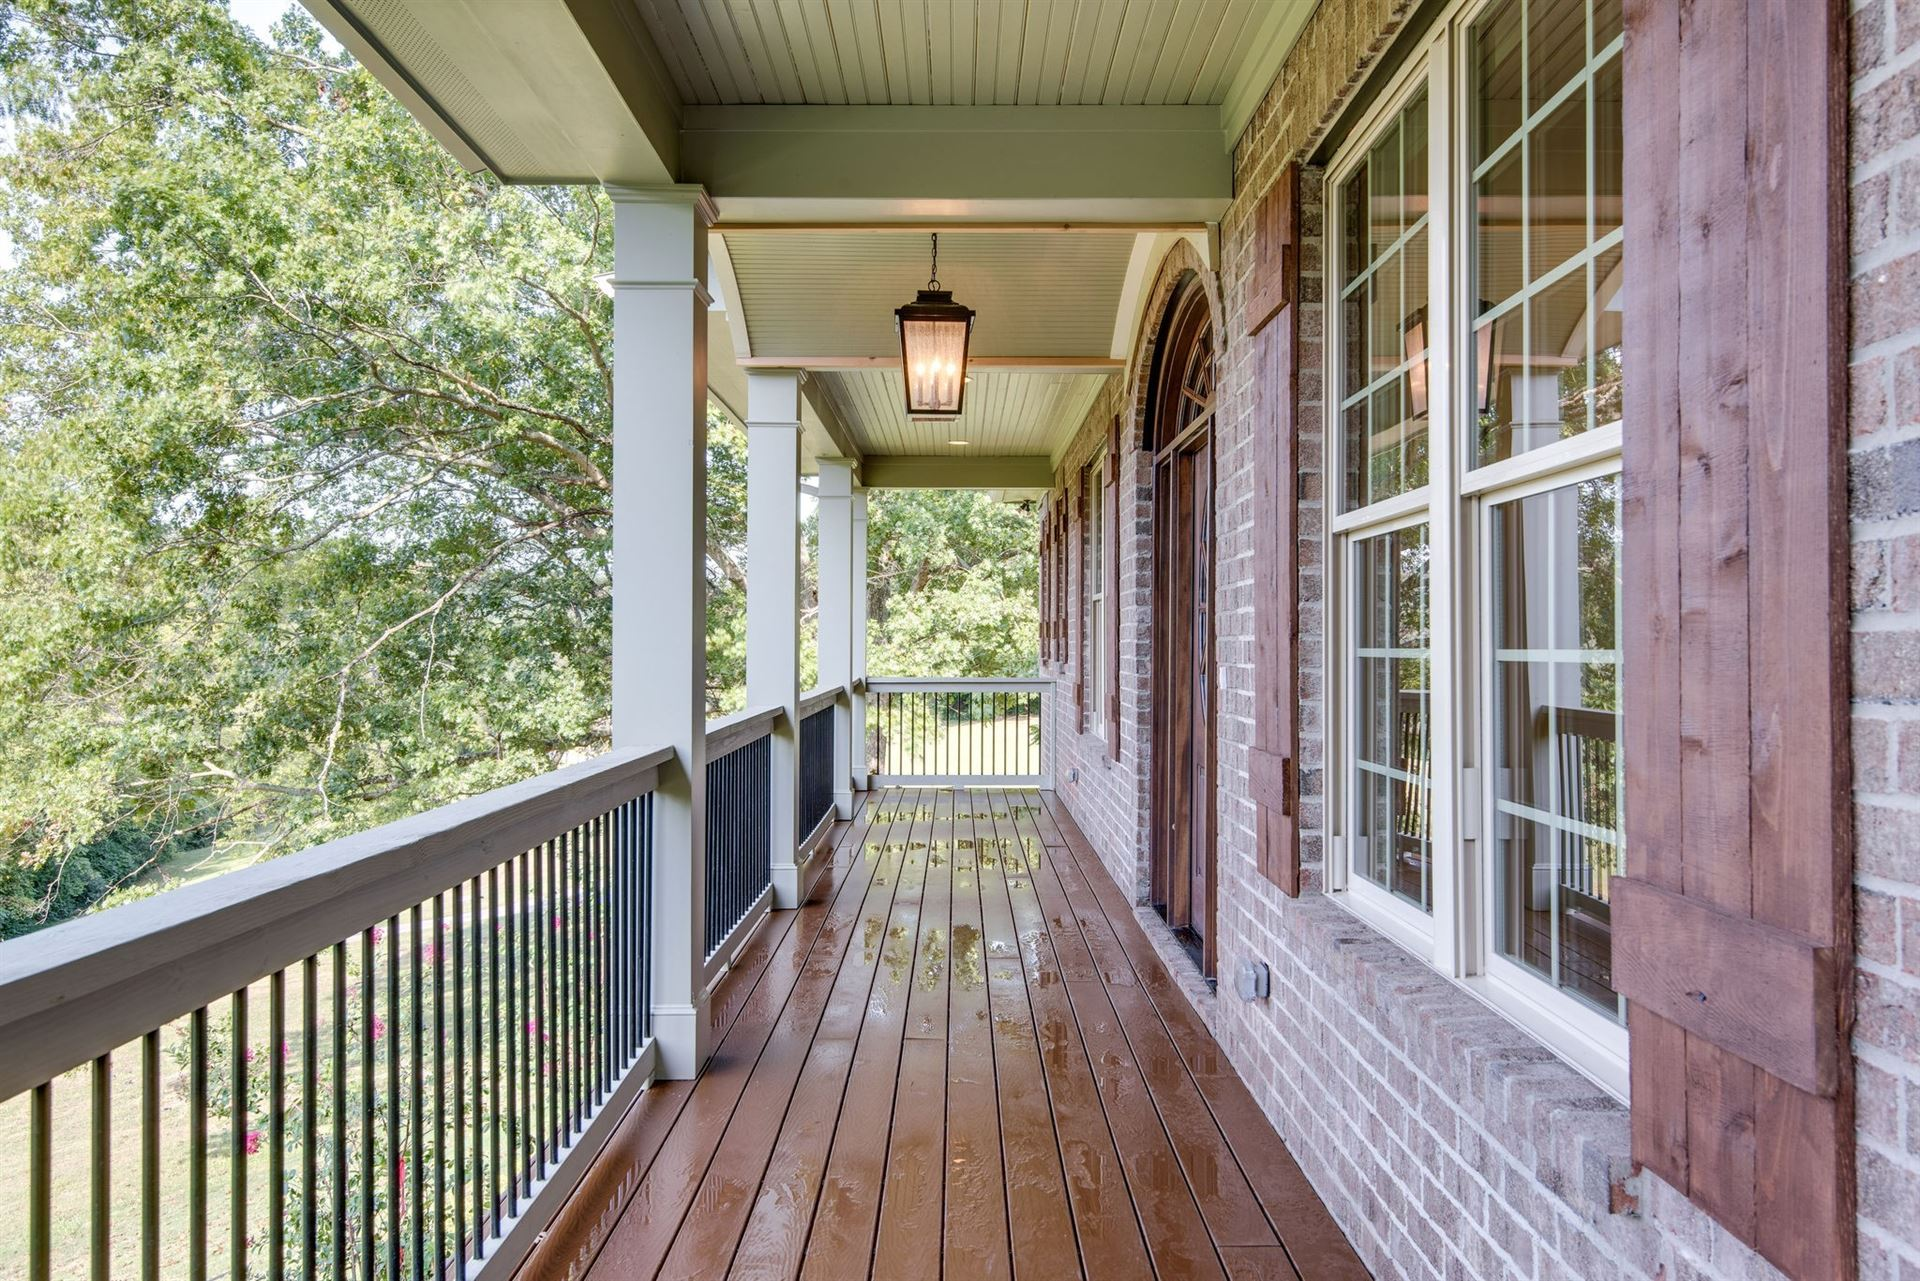 Photo of 1030 Holly Tree Gap Rd, Brentwood, TN 37027 (MLS # 2187598)